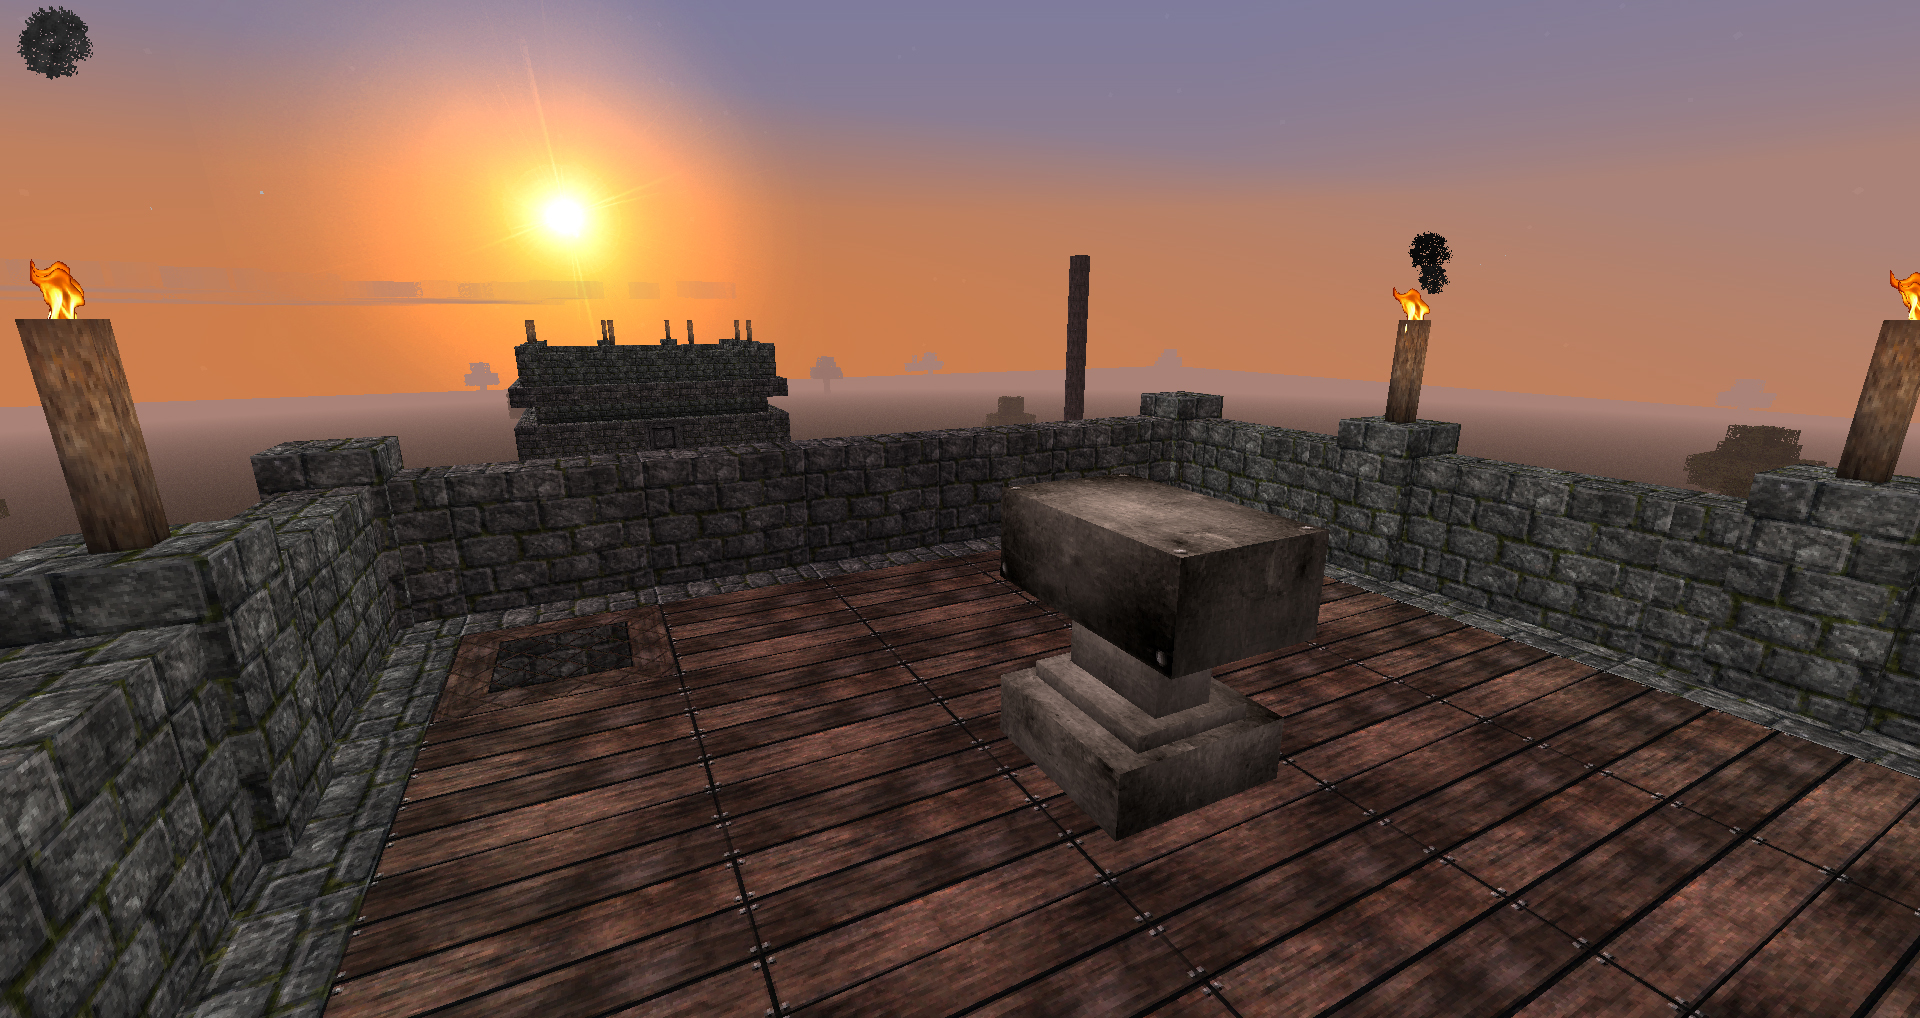 http://minecraft-forum.net/wp-content/uploads/2012/12/915c1__Silent-hill-texture-pack.jpg